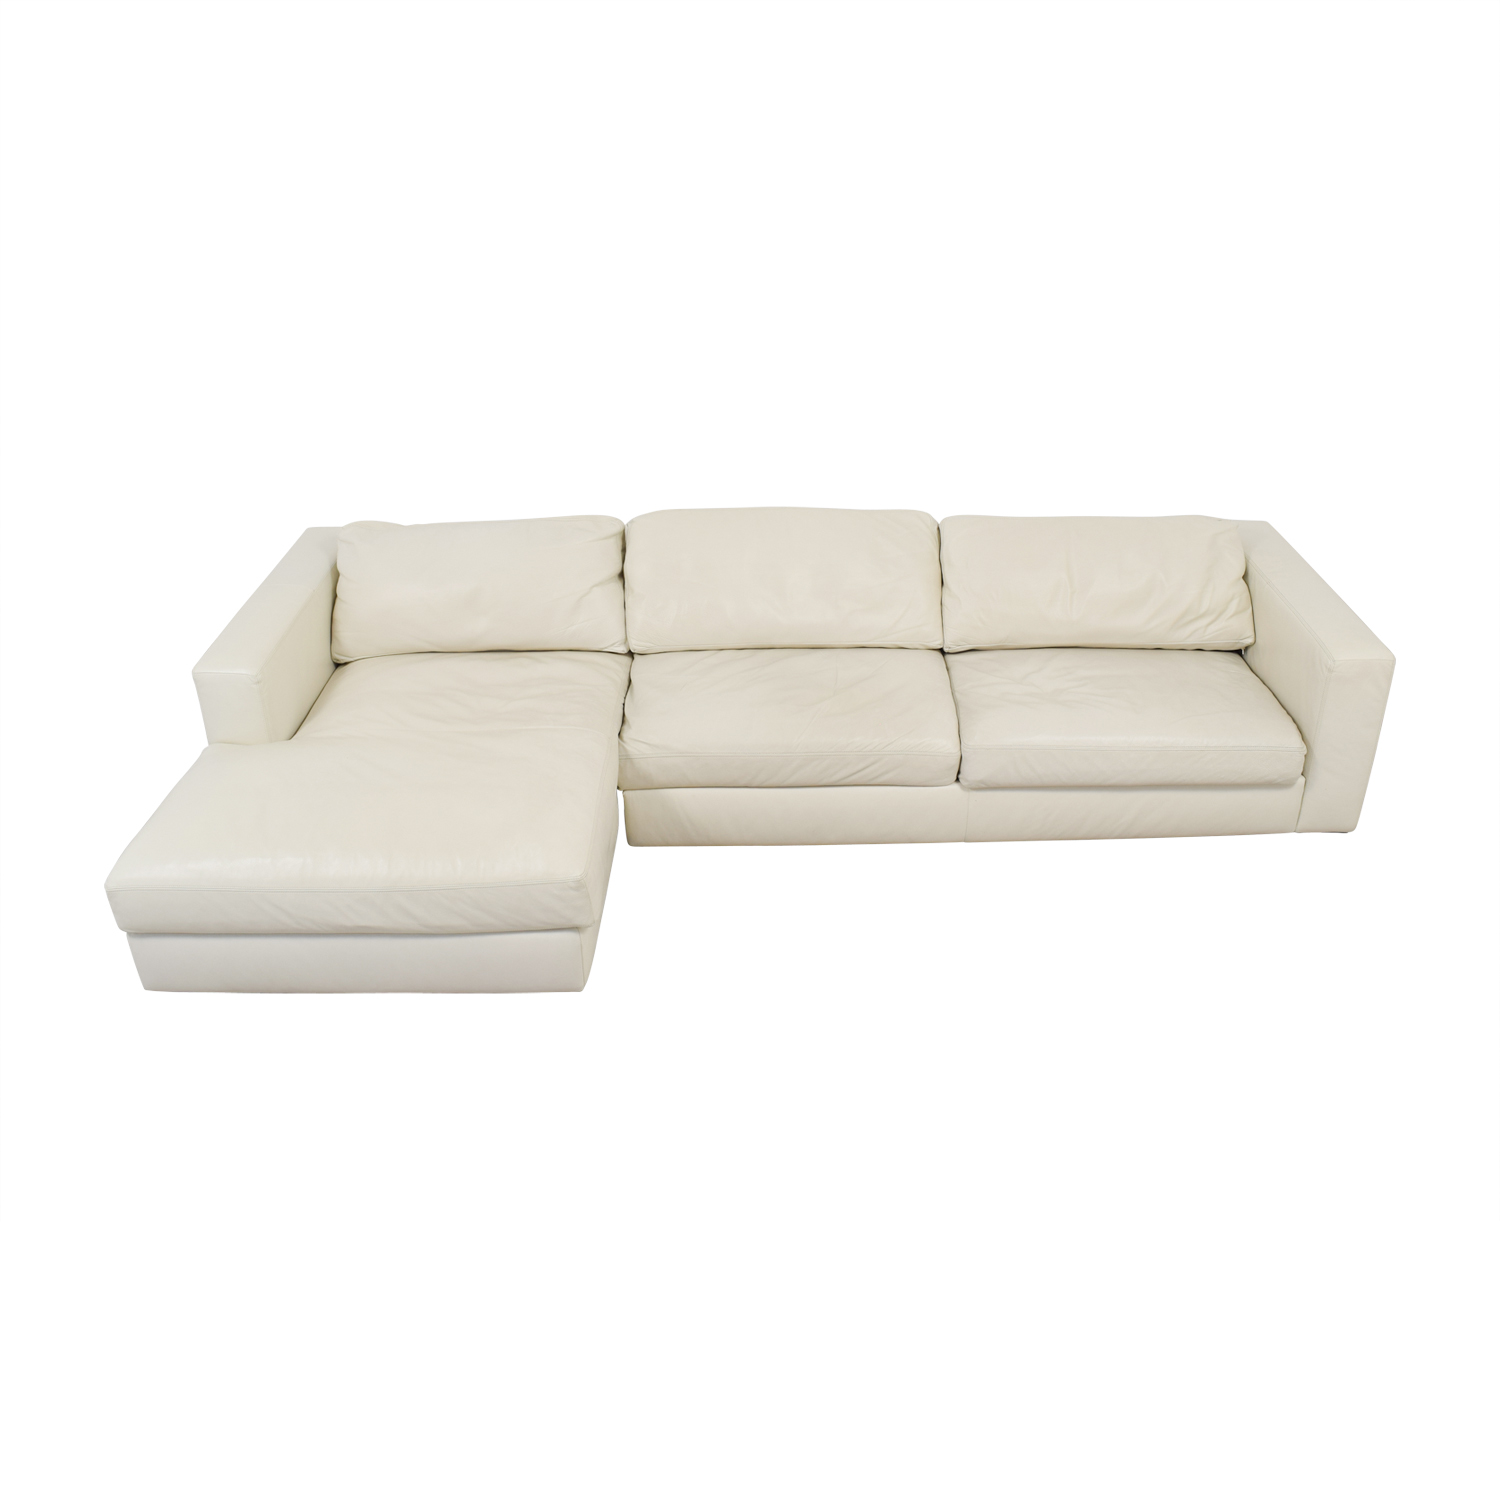 Design Within Reach Design Within Reach by Jeffrey Bernett Reid White Left Chaise Sectional